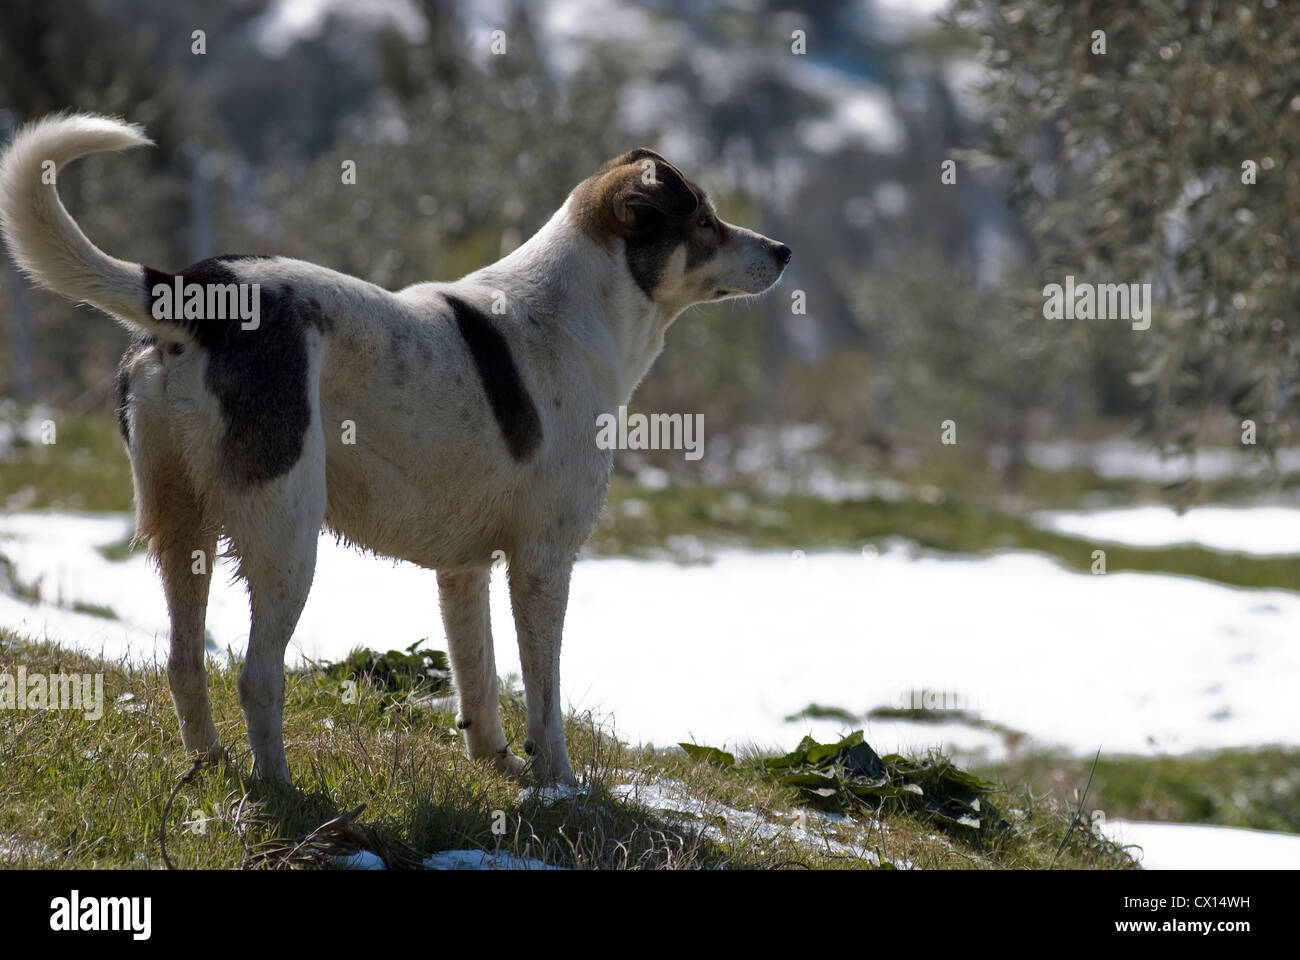 Mongrel dog standing in snowy landscape (Pelion, Greece) - Stock Image